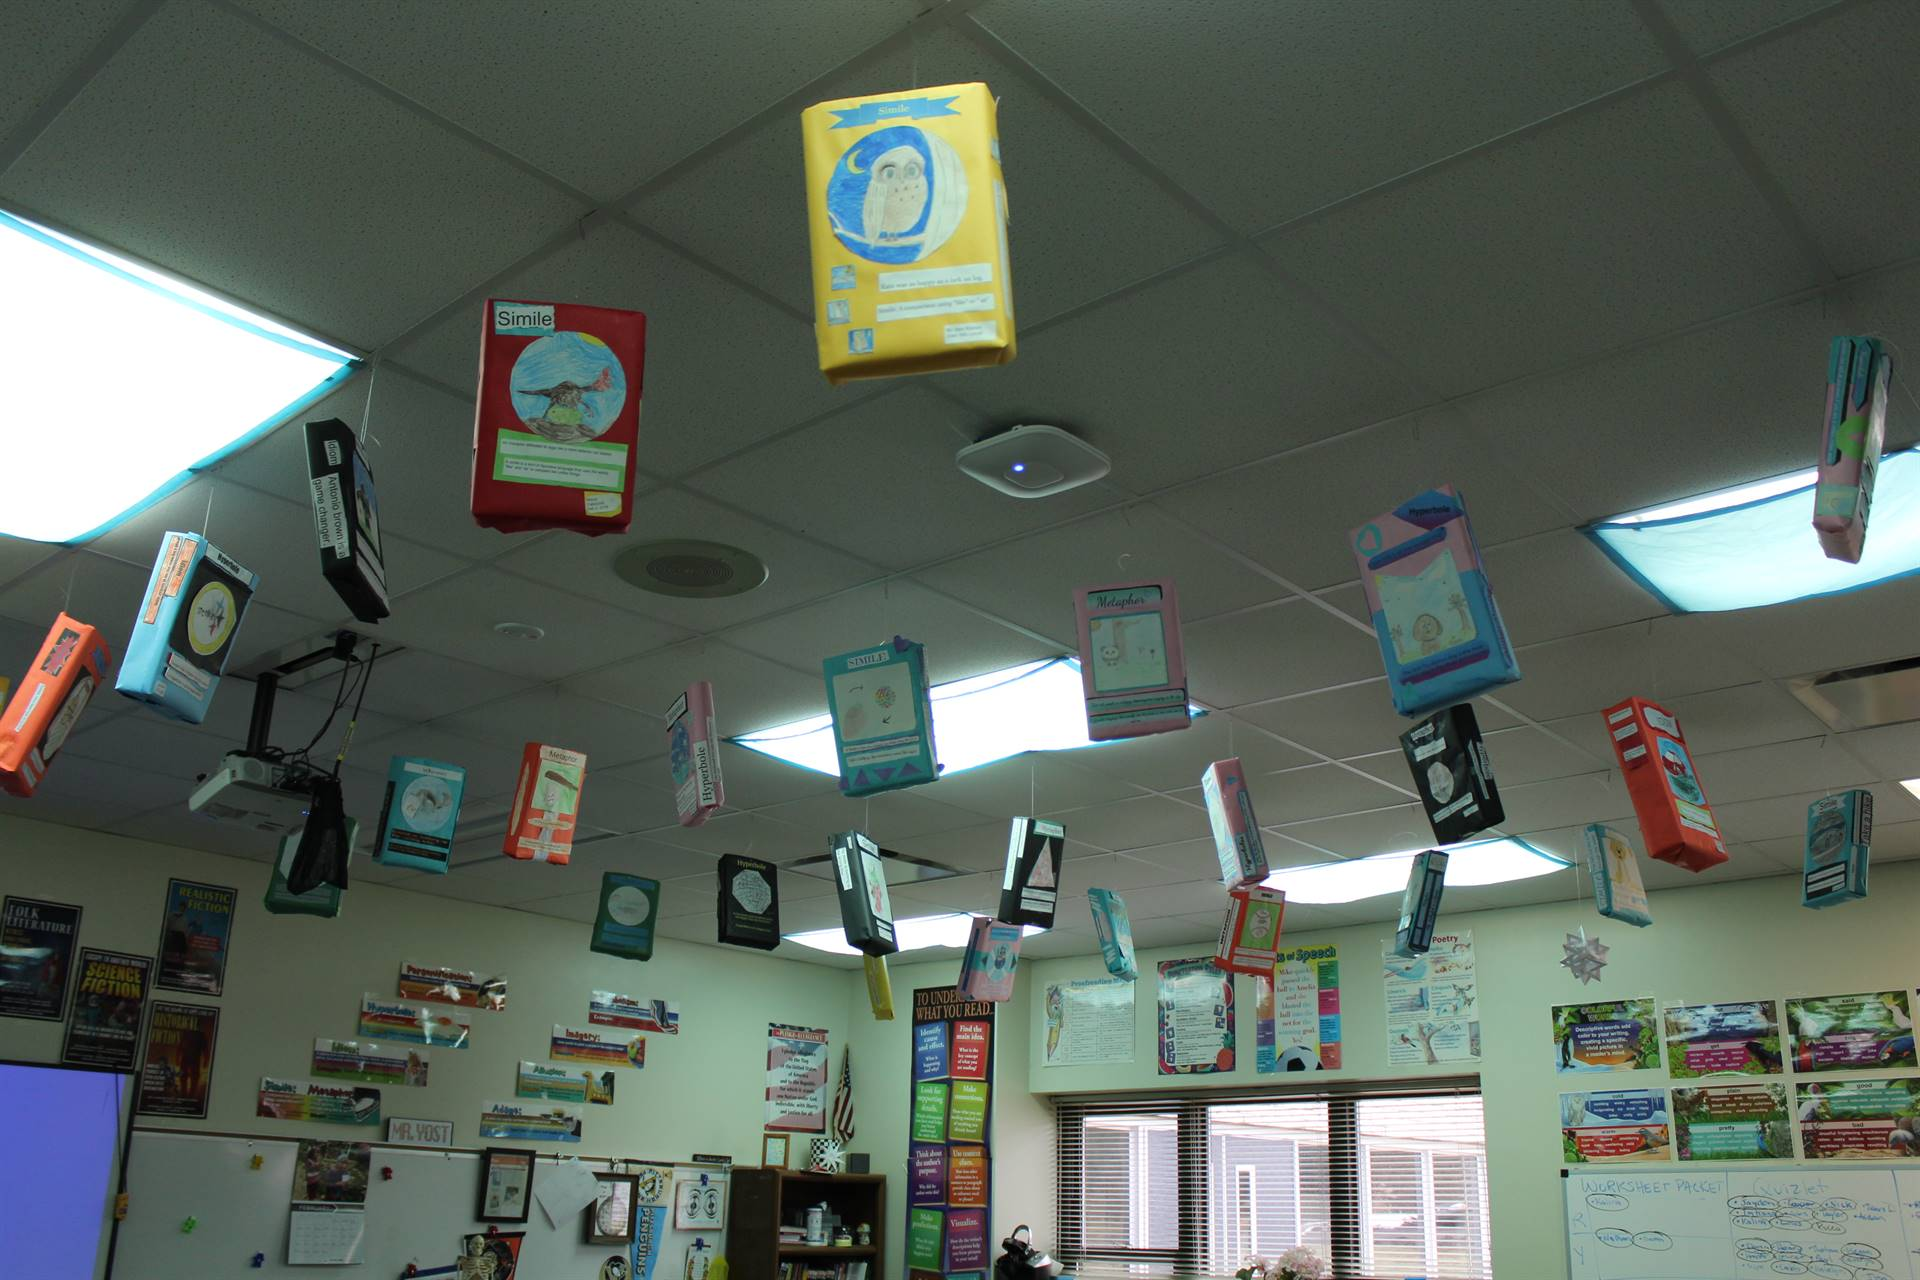 cereal boxes hanging from classroom ceiling